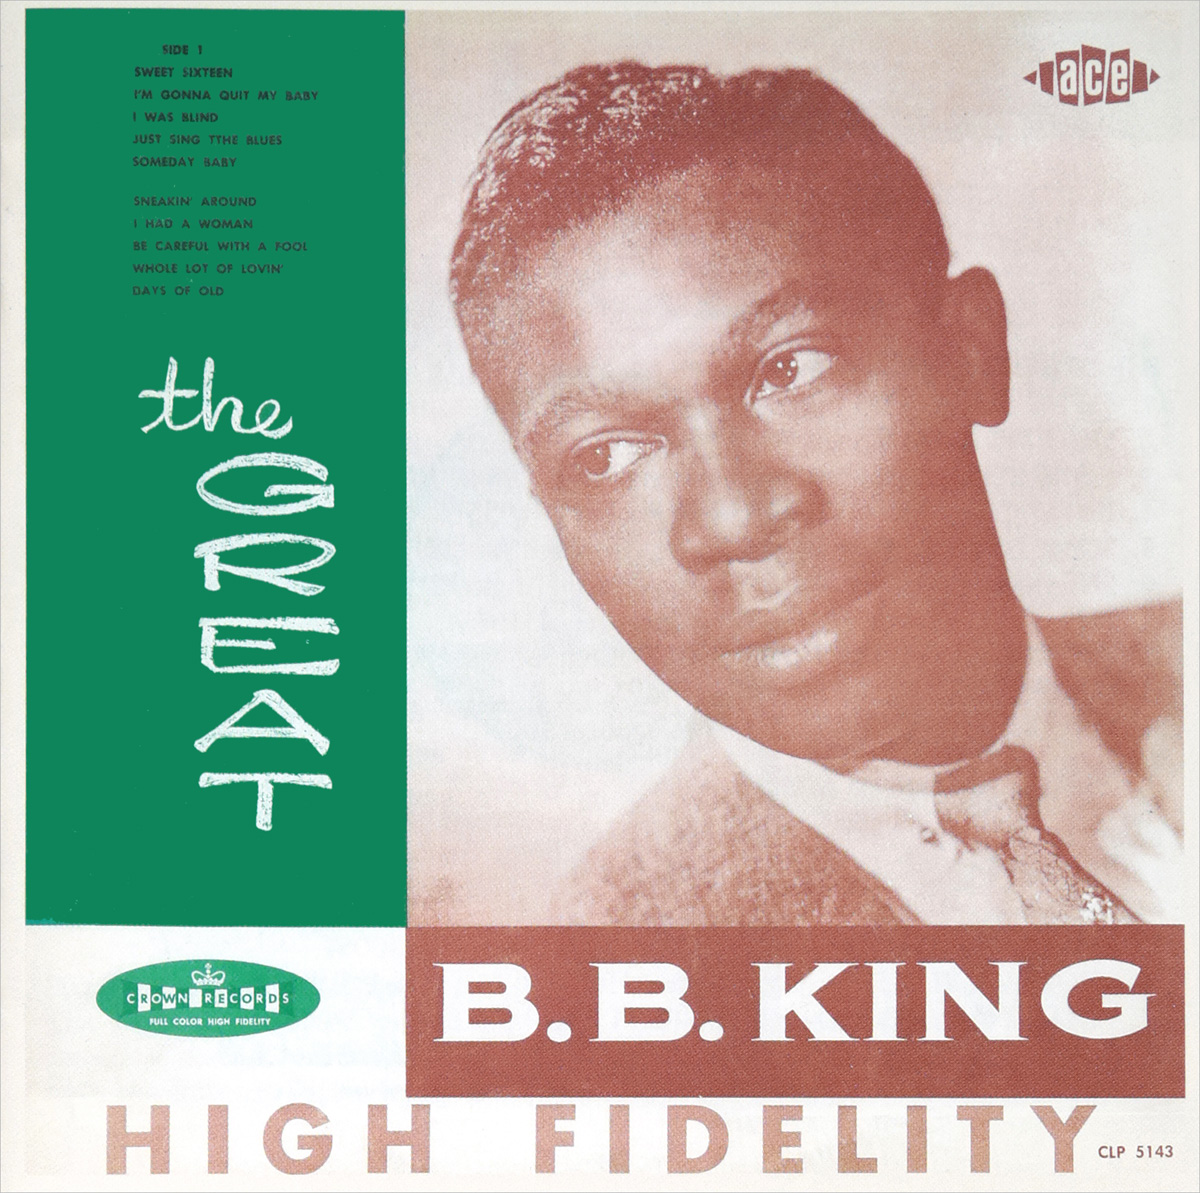 Би Би Кинг B. B. King And His Orchestra. The Great B.B. King би би кинг b b king